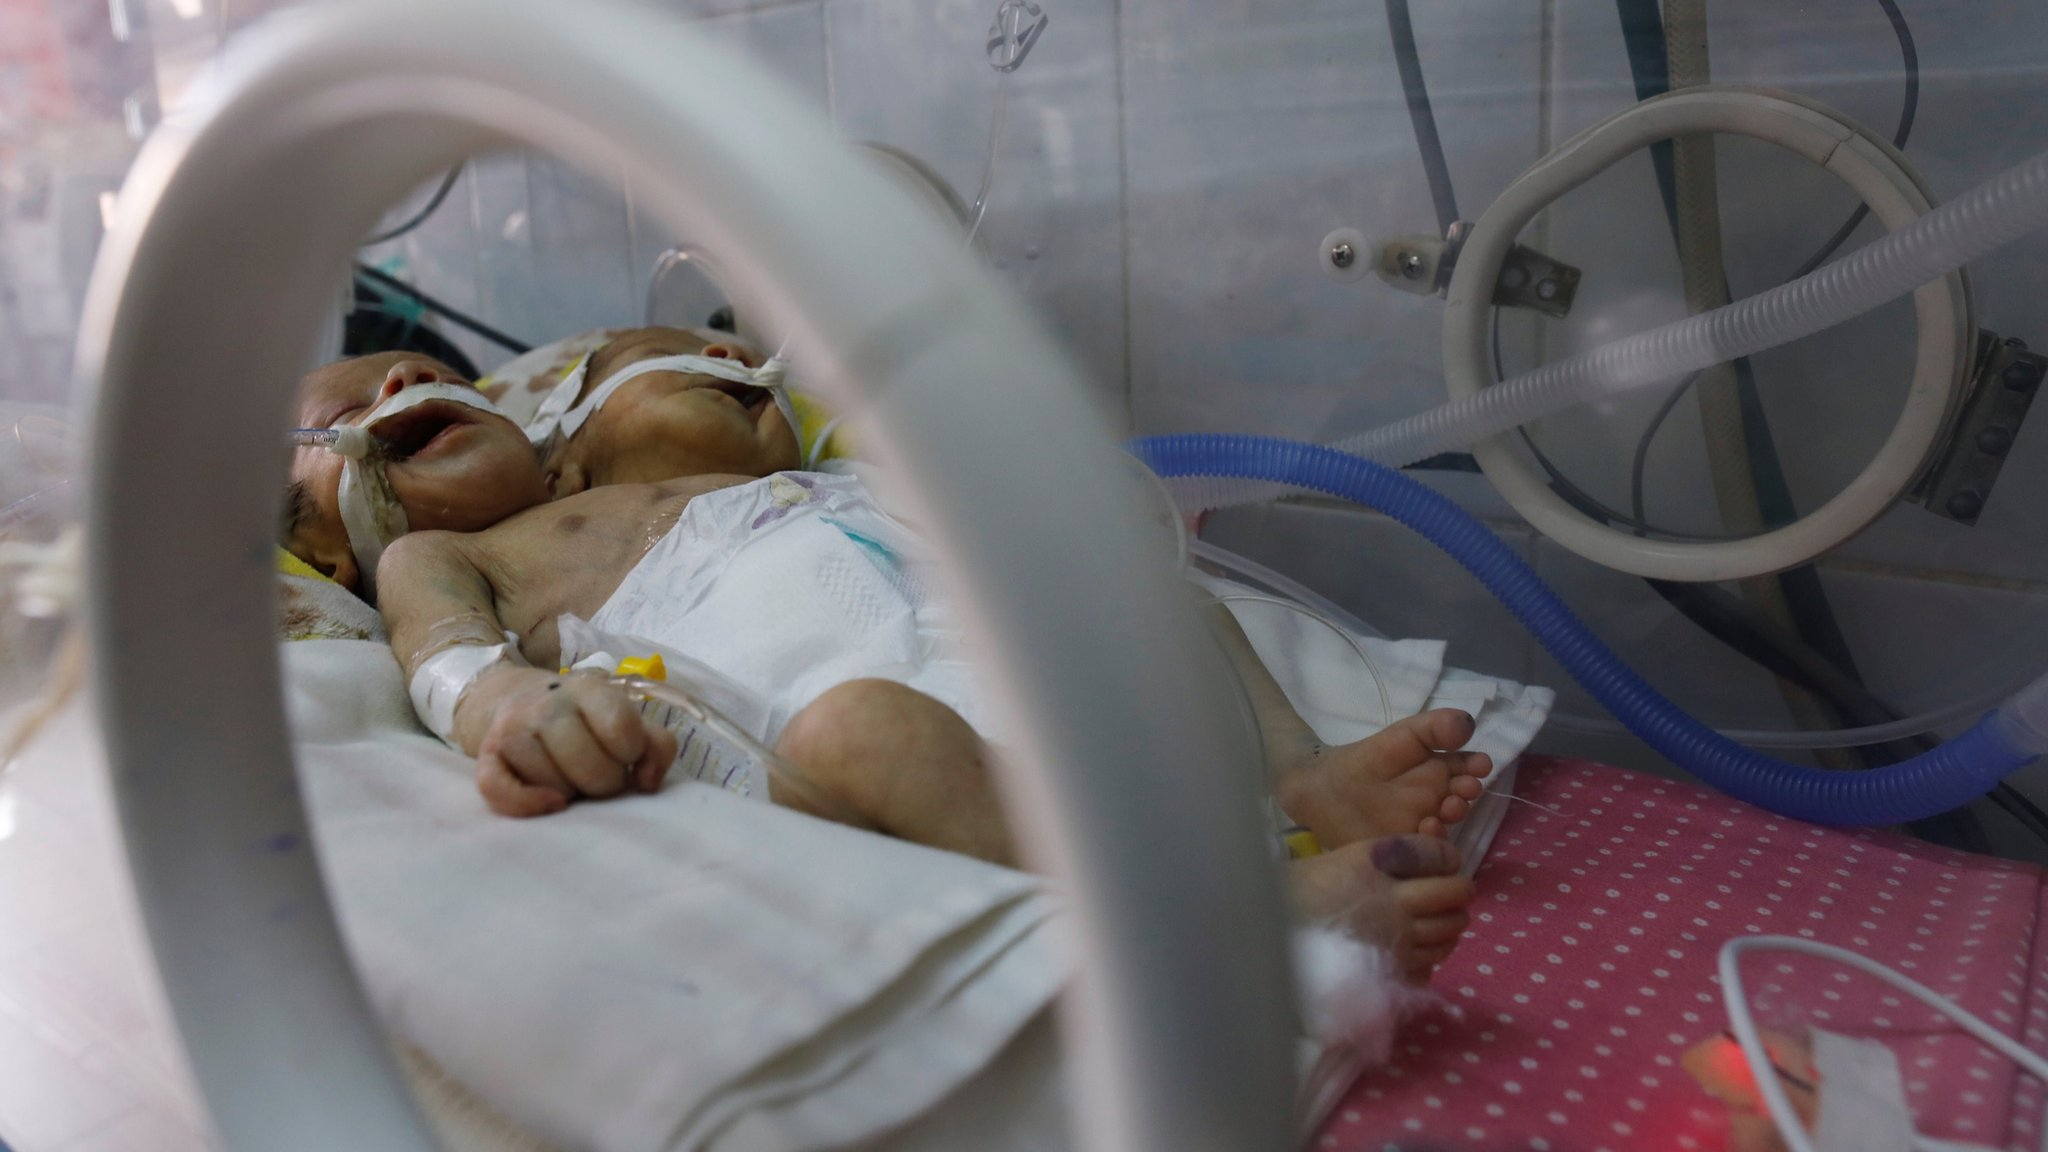 Yemen conjoined twins: Doctors appeal for help evacuating boys